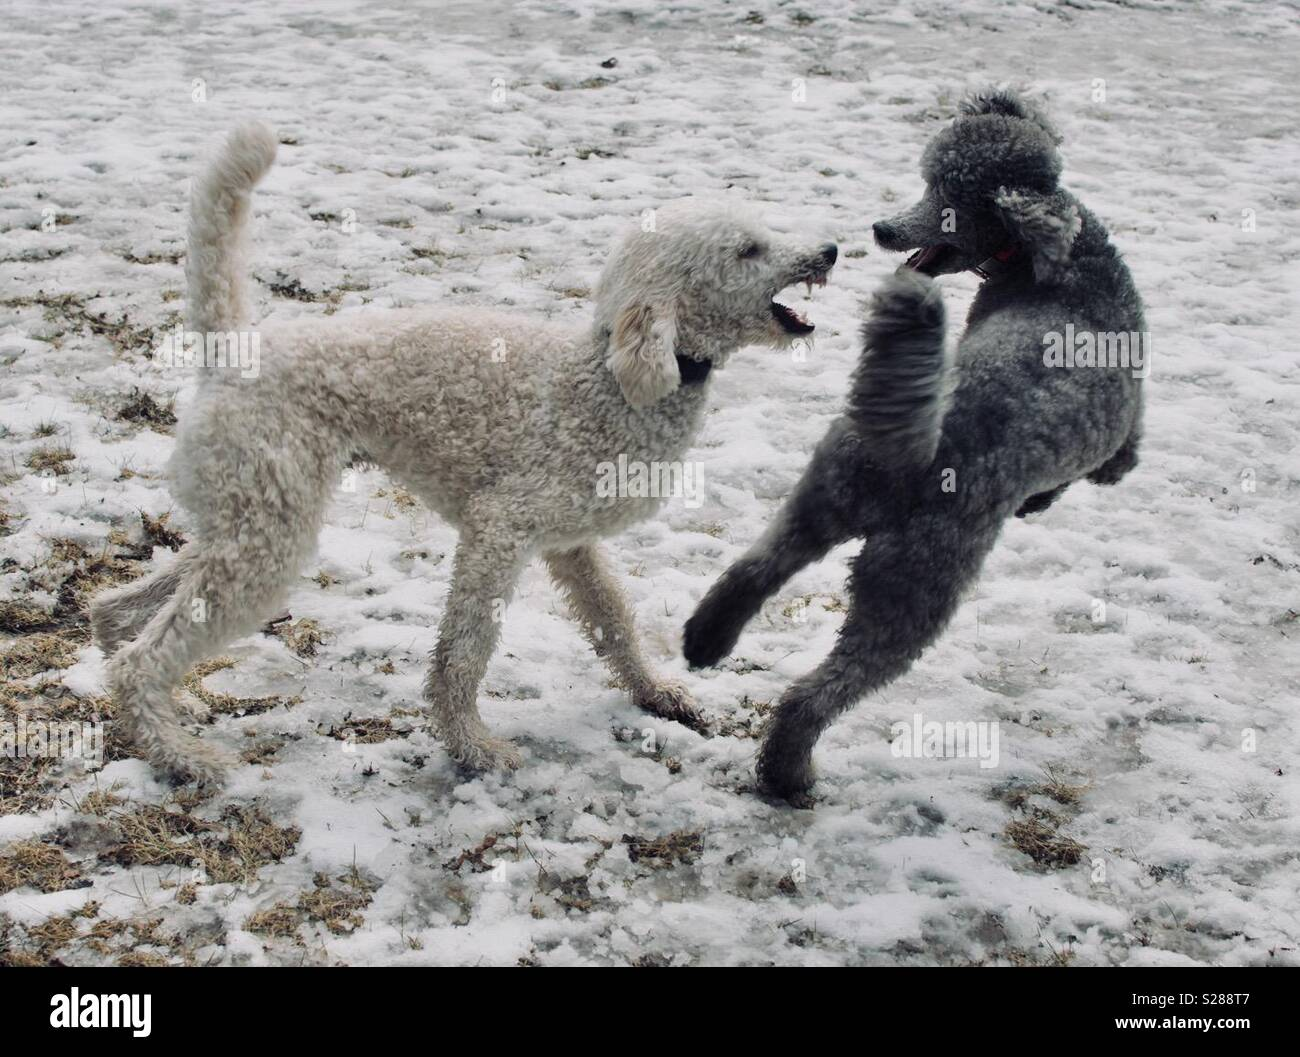 Poodles playing in the snow - Stock Image